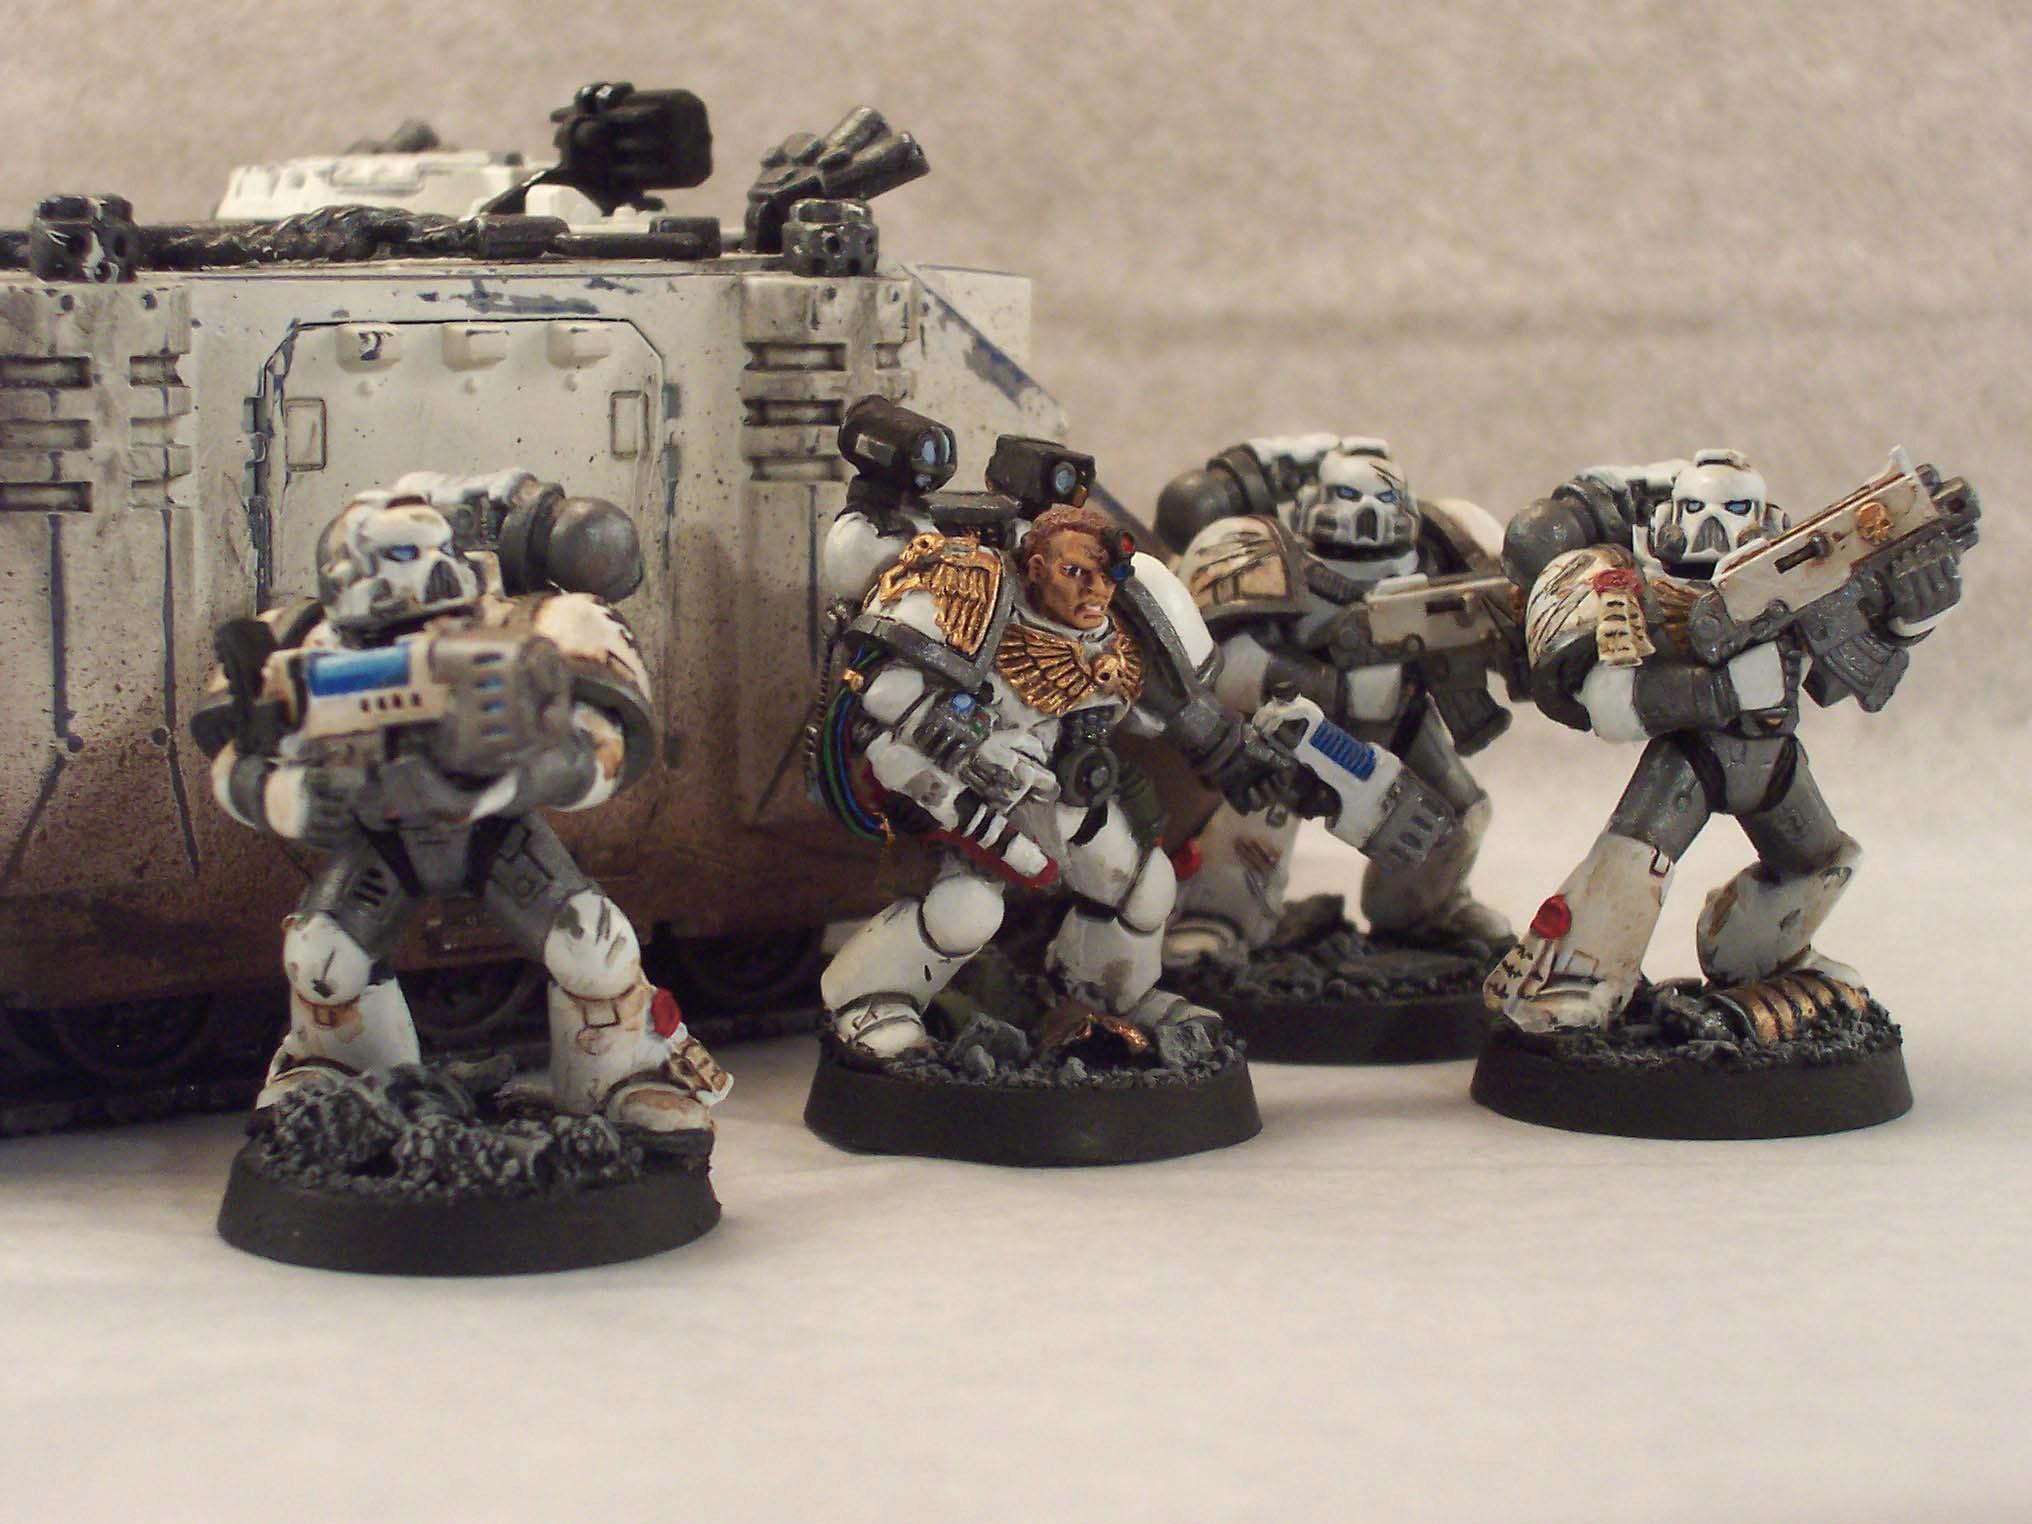 Apothecary, Celestial Lions, Plasma, Space Marines, Warhammer 40,000, Weathered